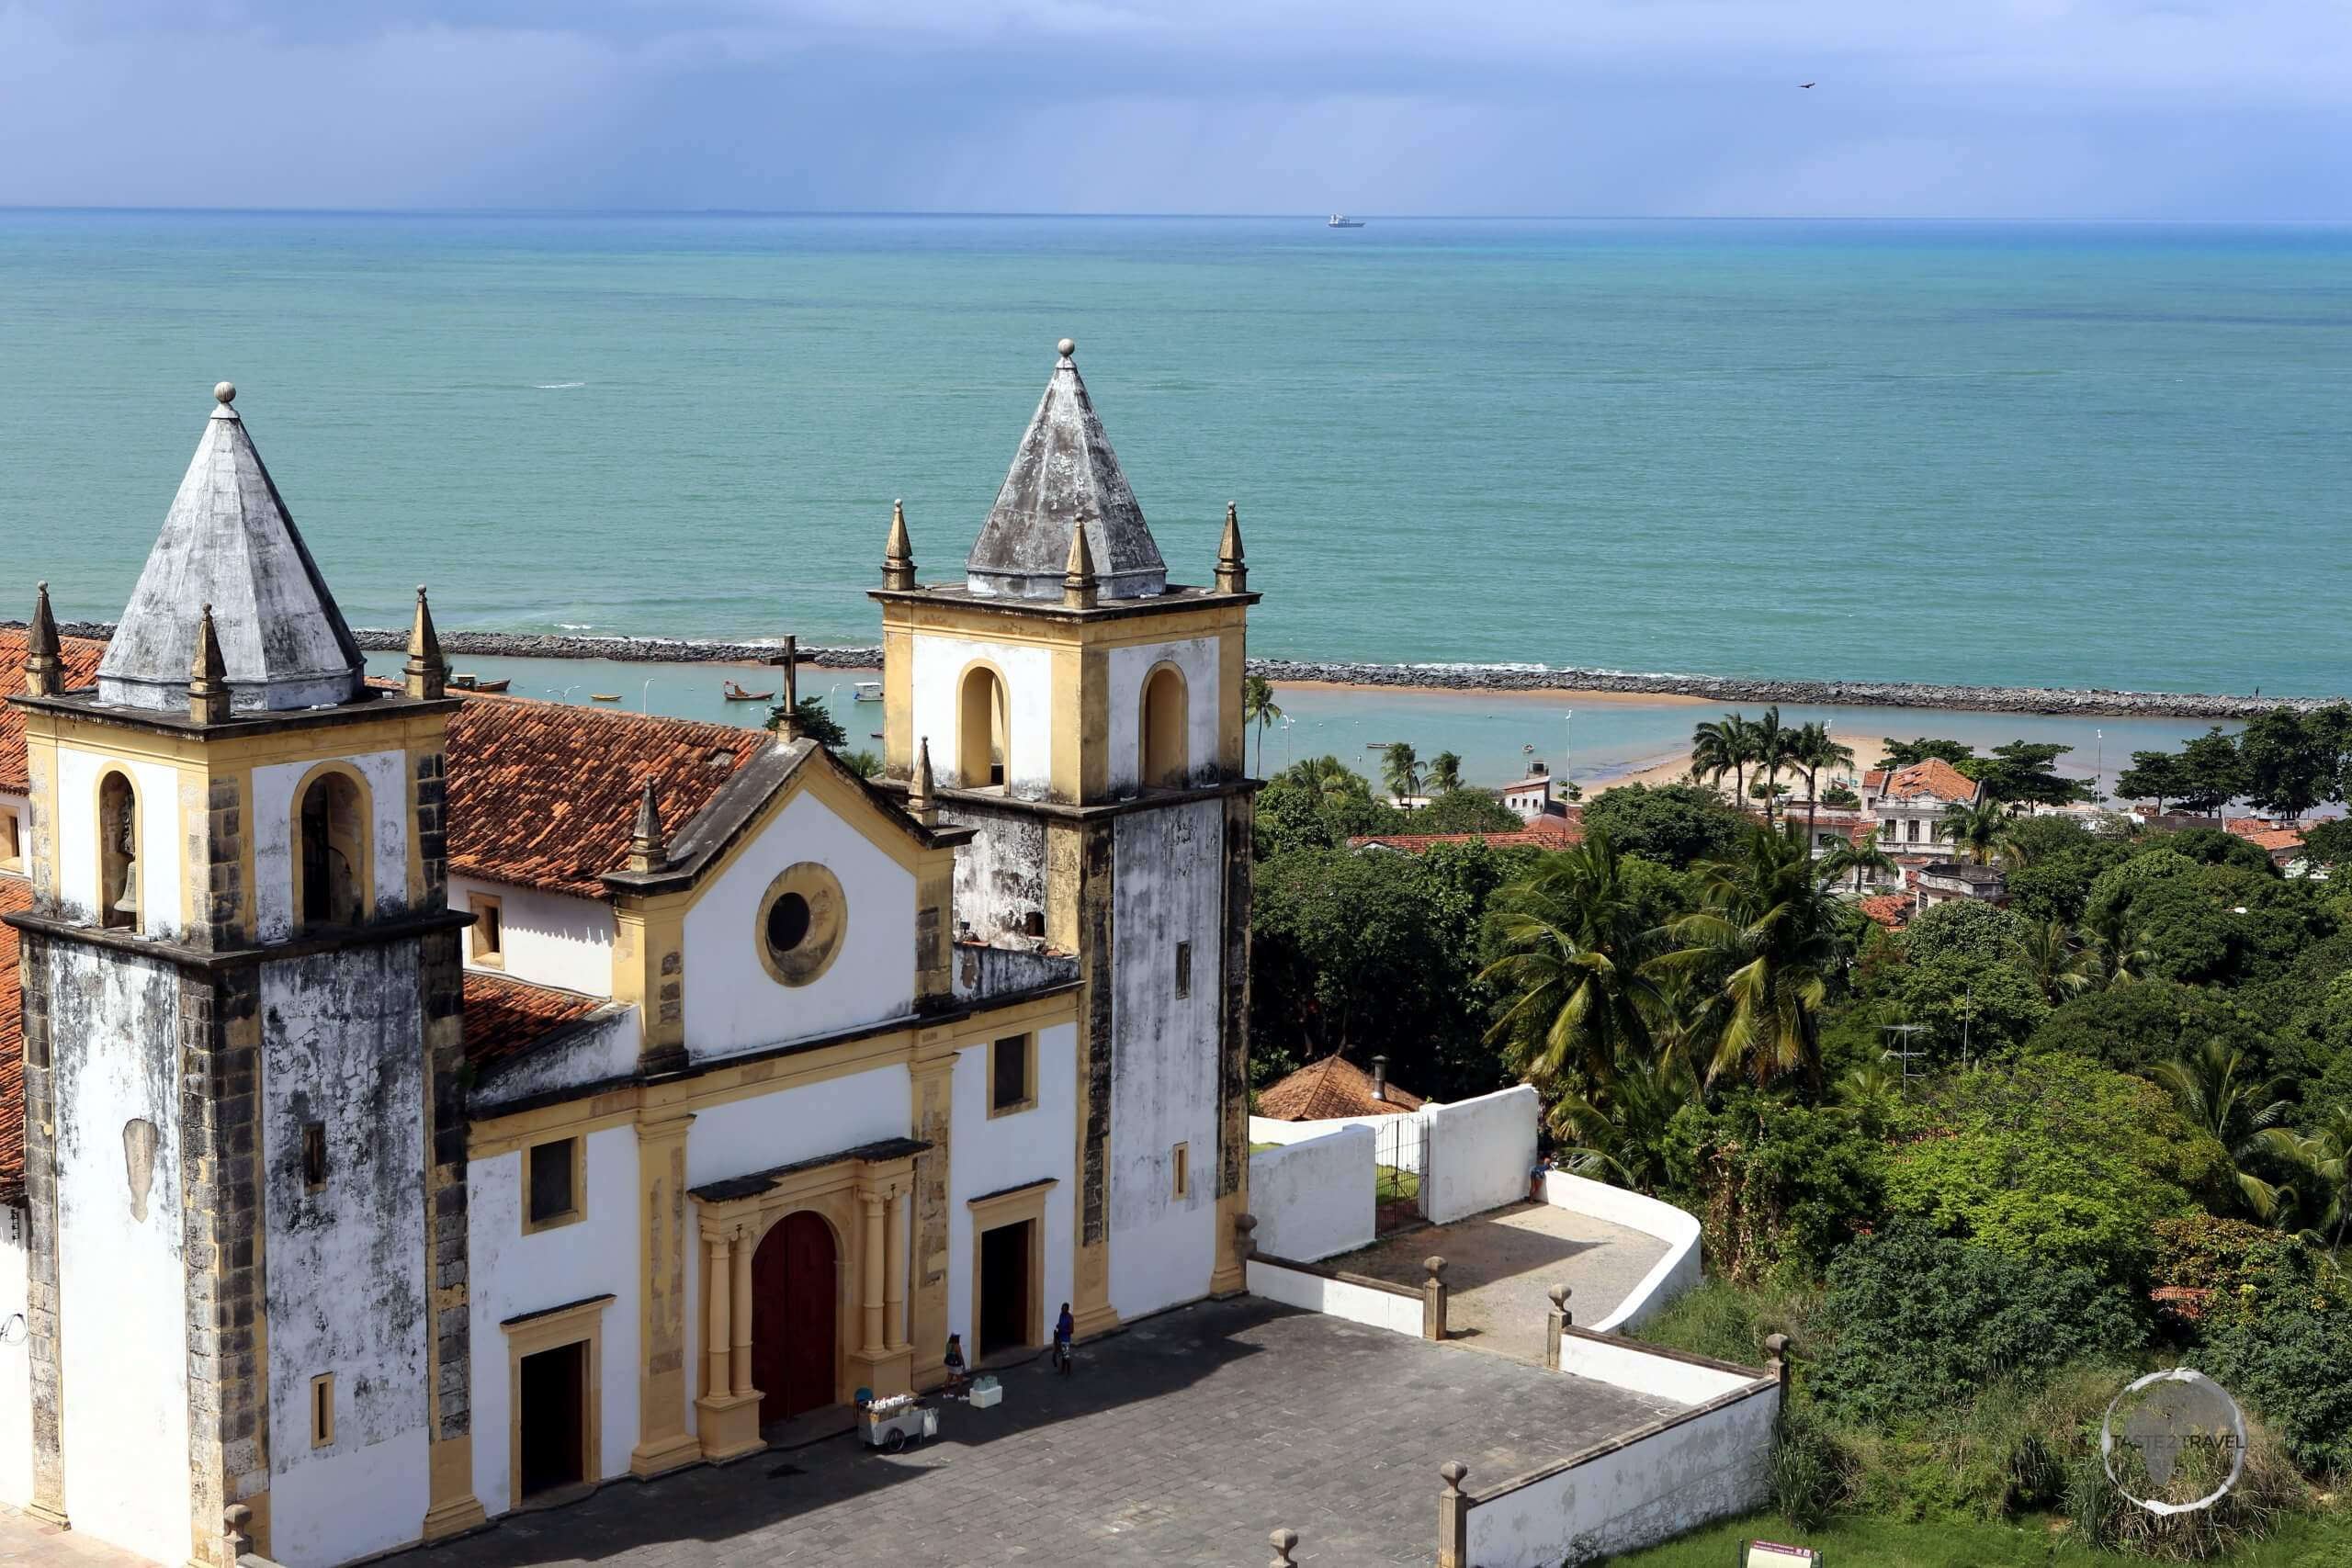 Panoramic view of the Cathedral Alto da Se, the main cathedral in the historic town of Olinda, Pernambuco, Brazil.